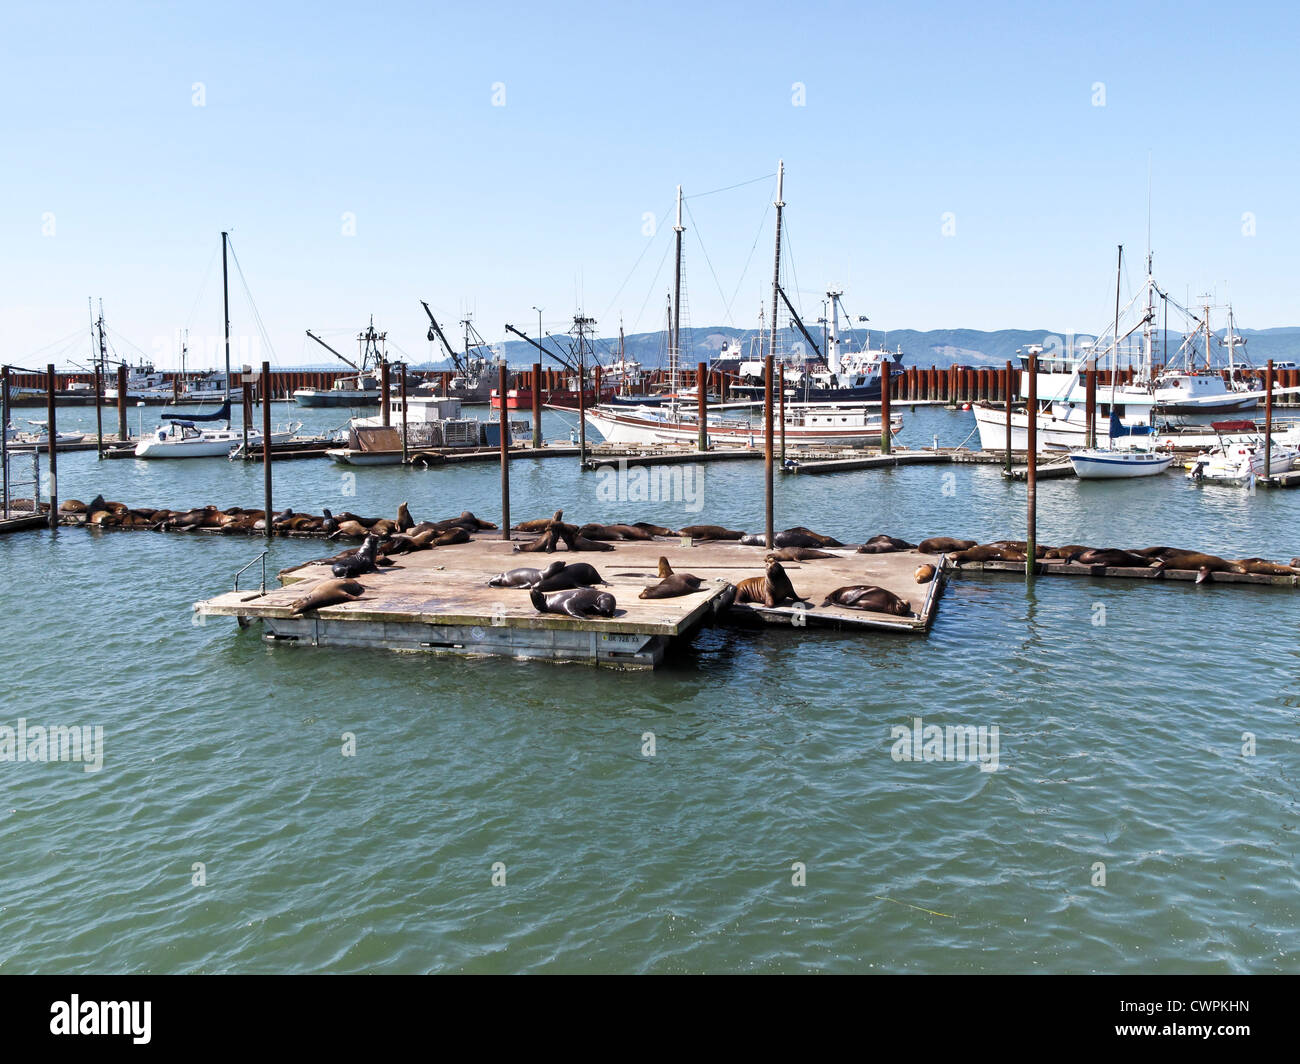 view of east mooring basin with commercial fishing boats & floating pier covered with supine sunning sea lions - Stock Image